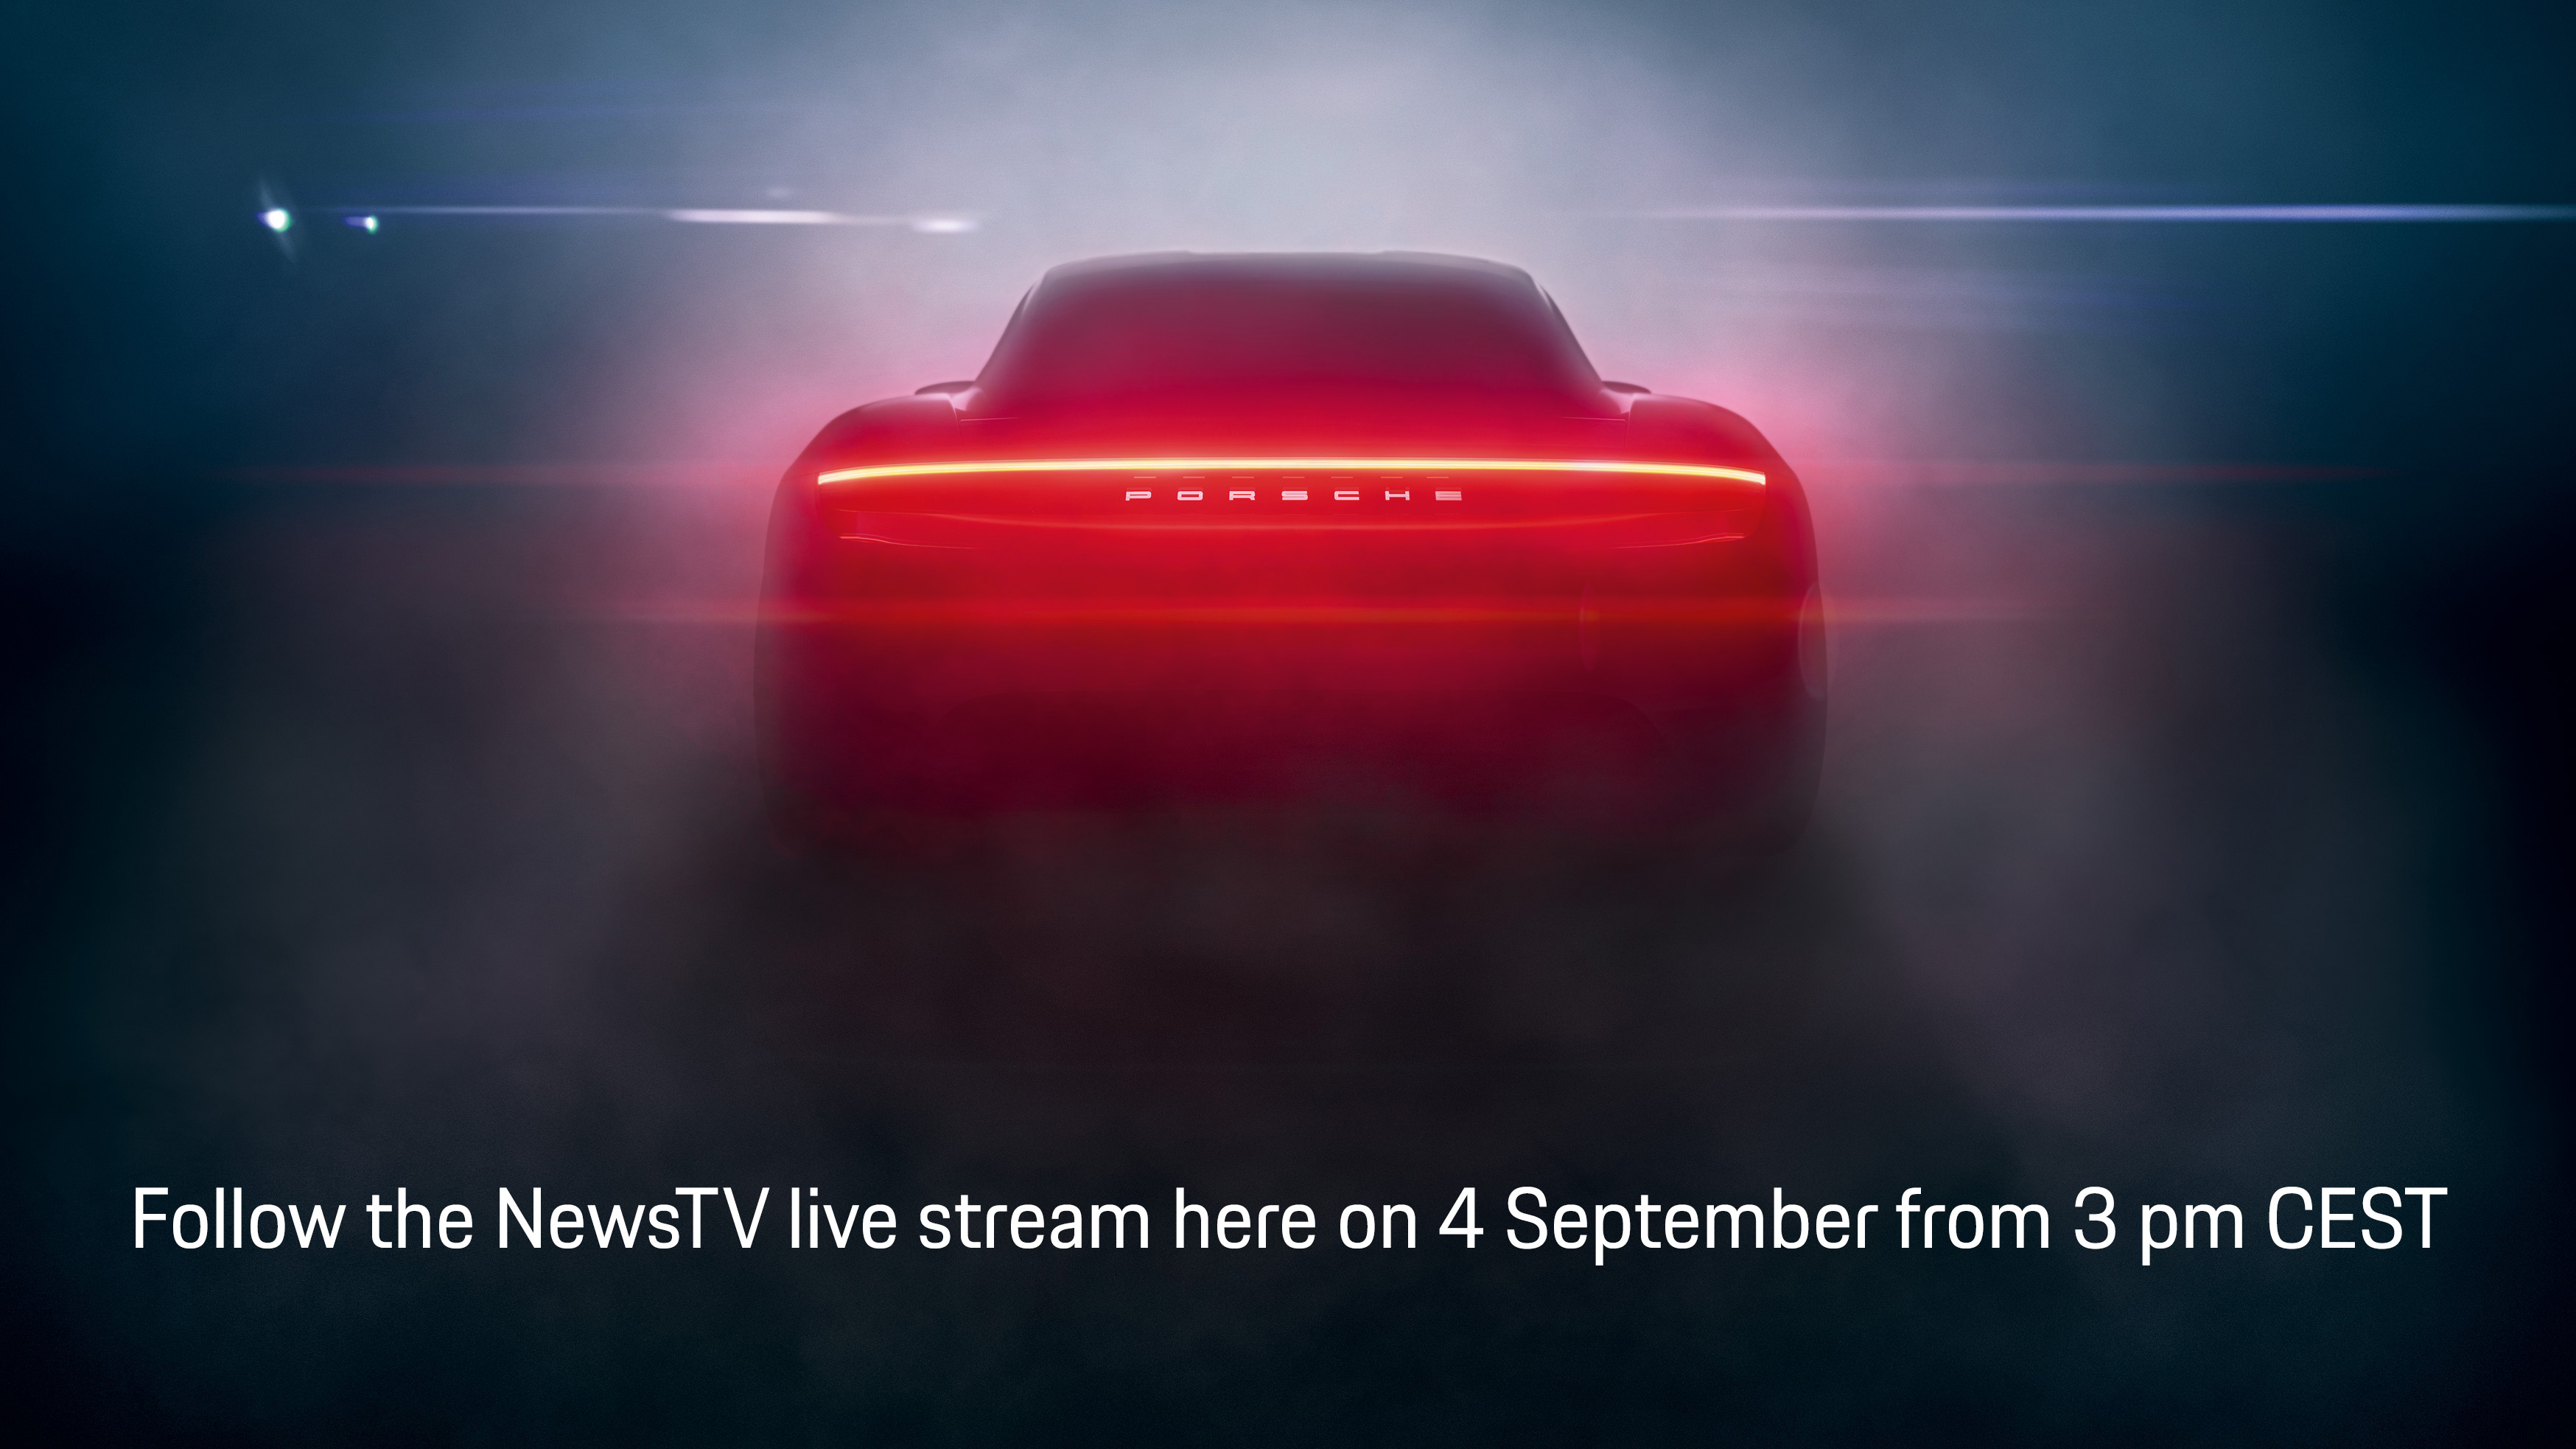 Live broadcasting of the world premiere of the brand new Porsche Taycan